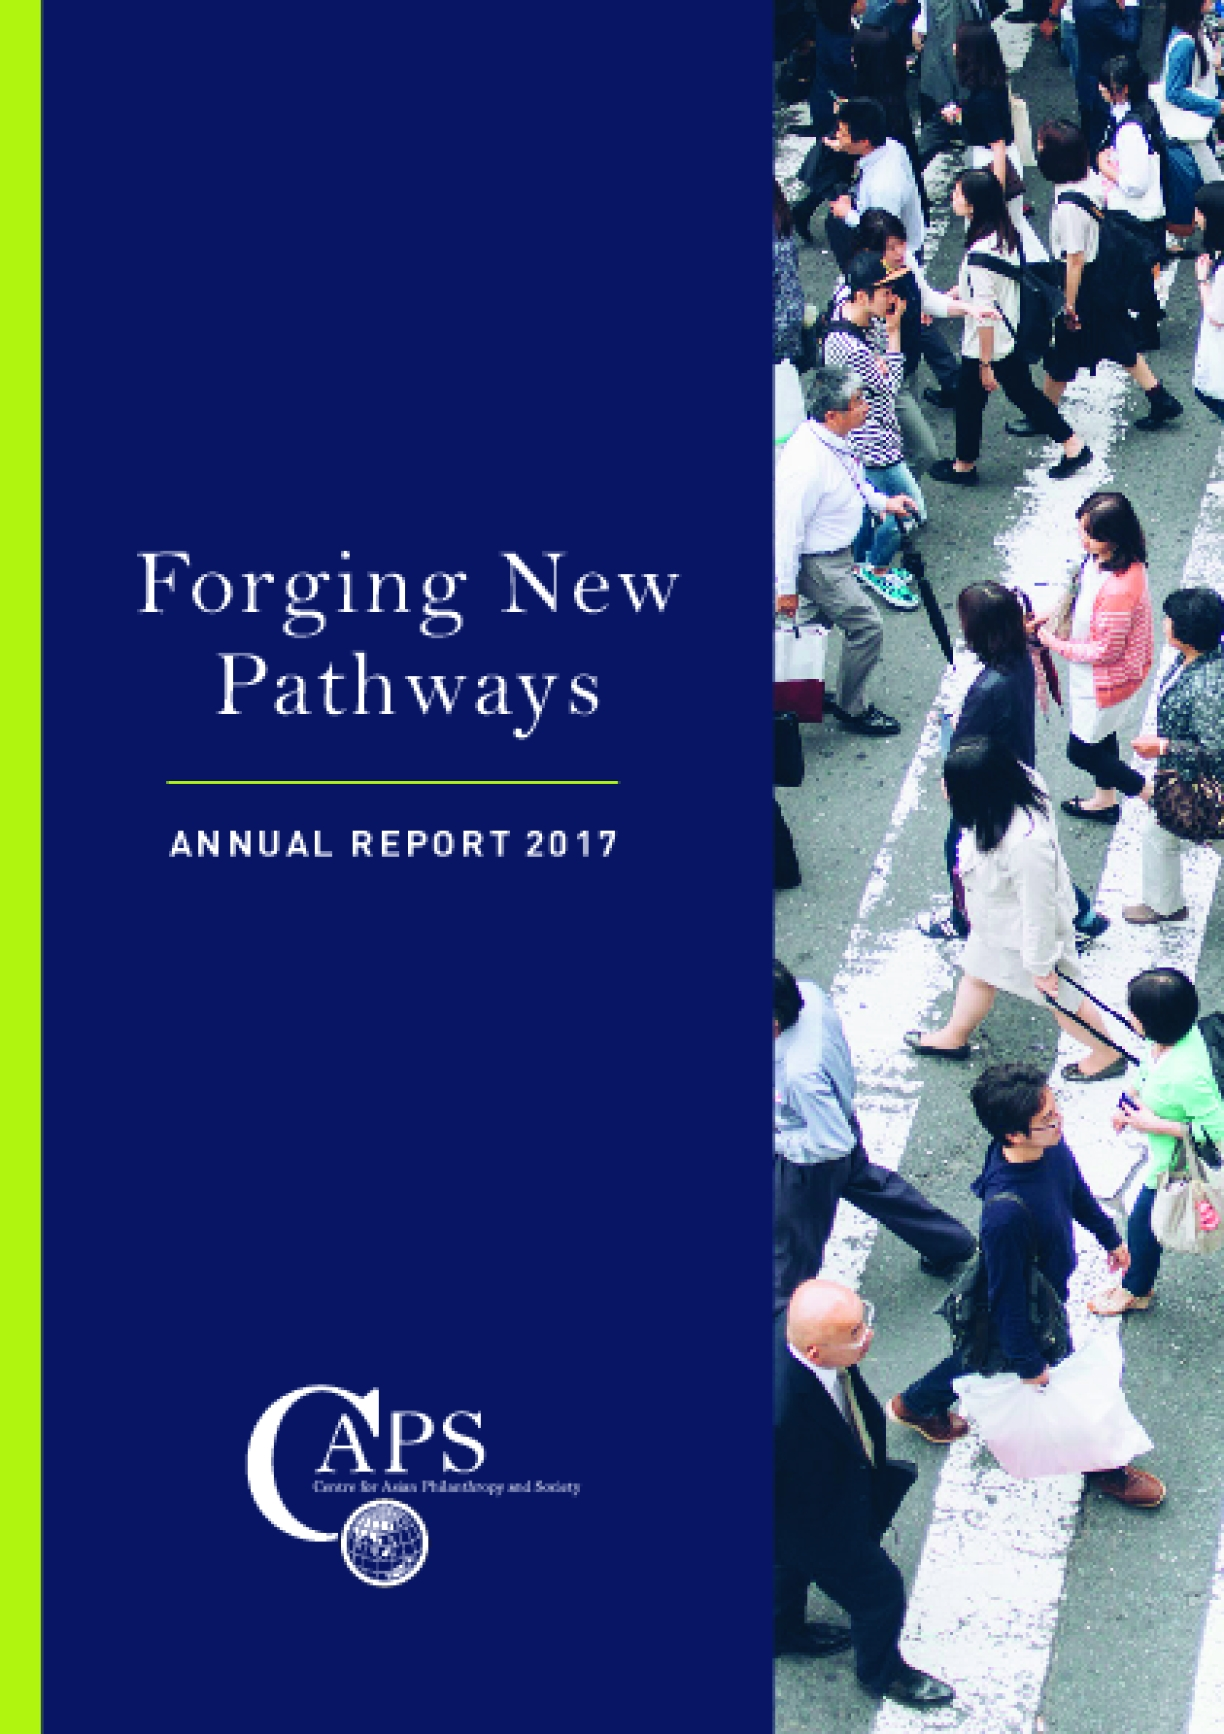 Forging New Pathways: Annual Report 2017